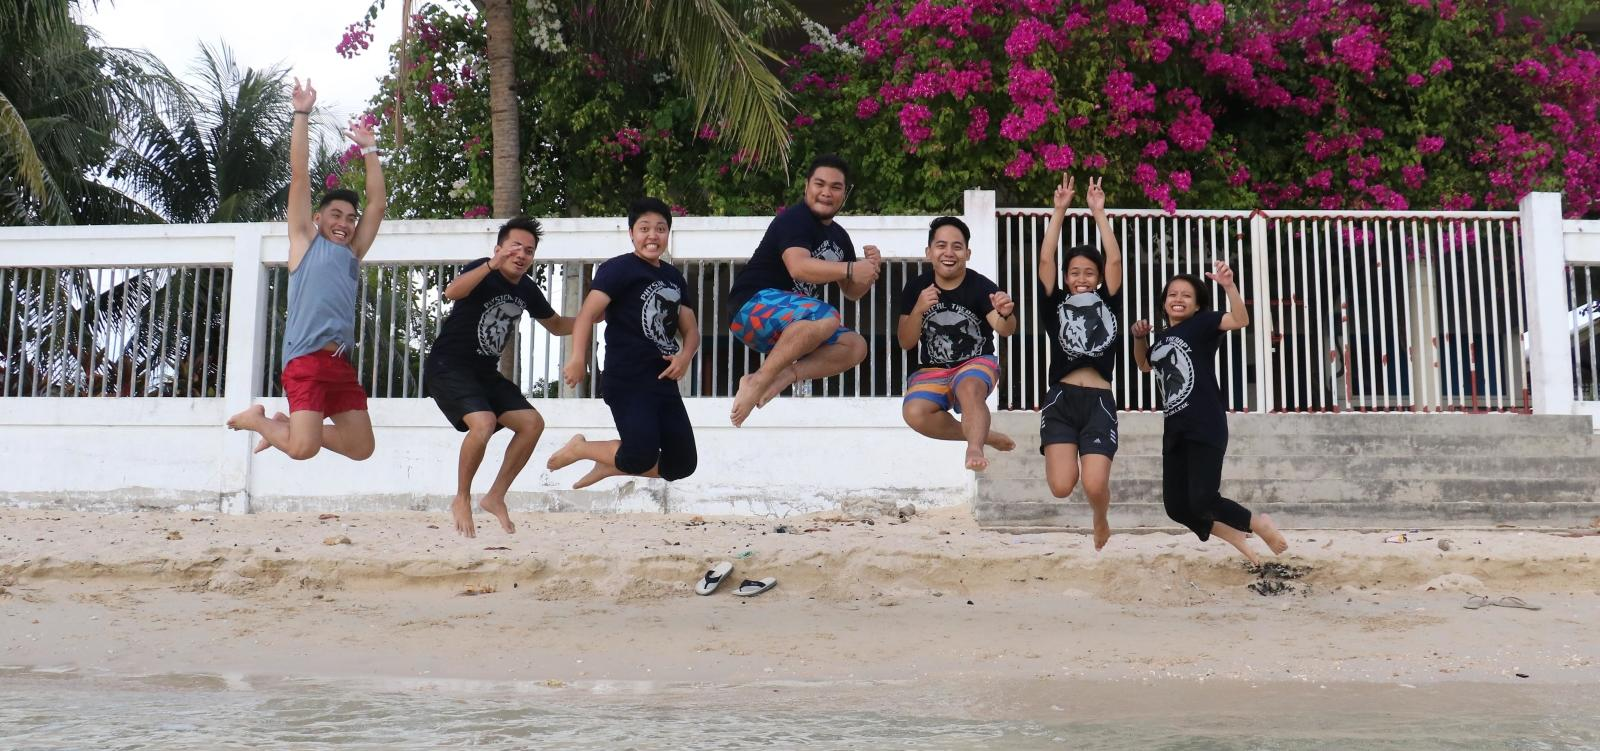 Projects Abroad volunteers having fun on a beach in the Philippines